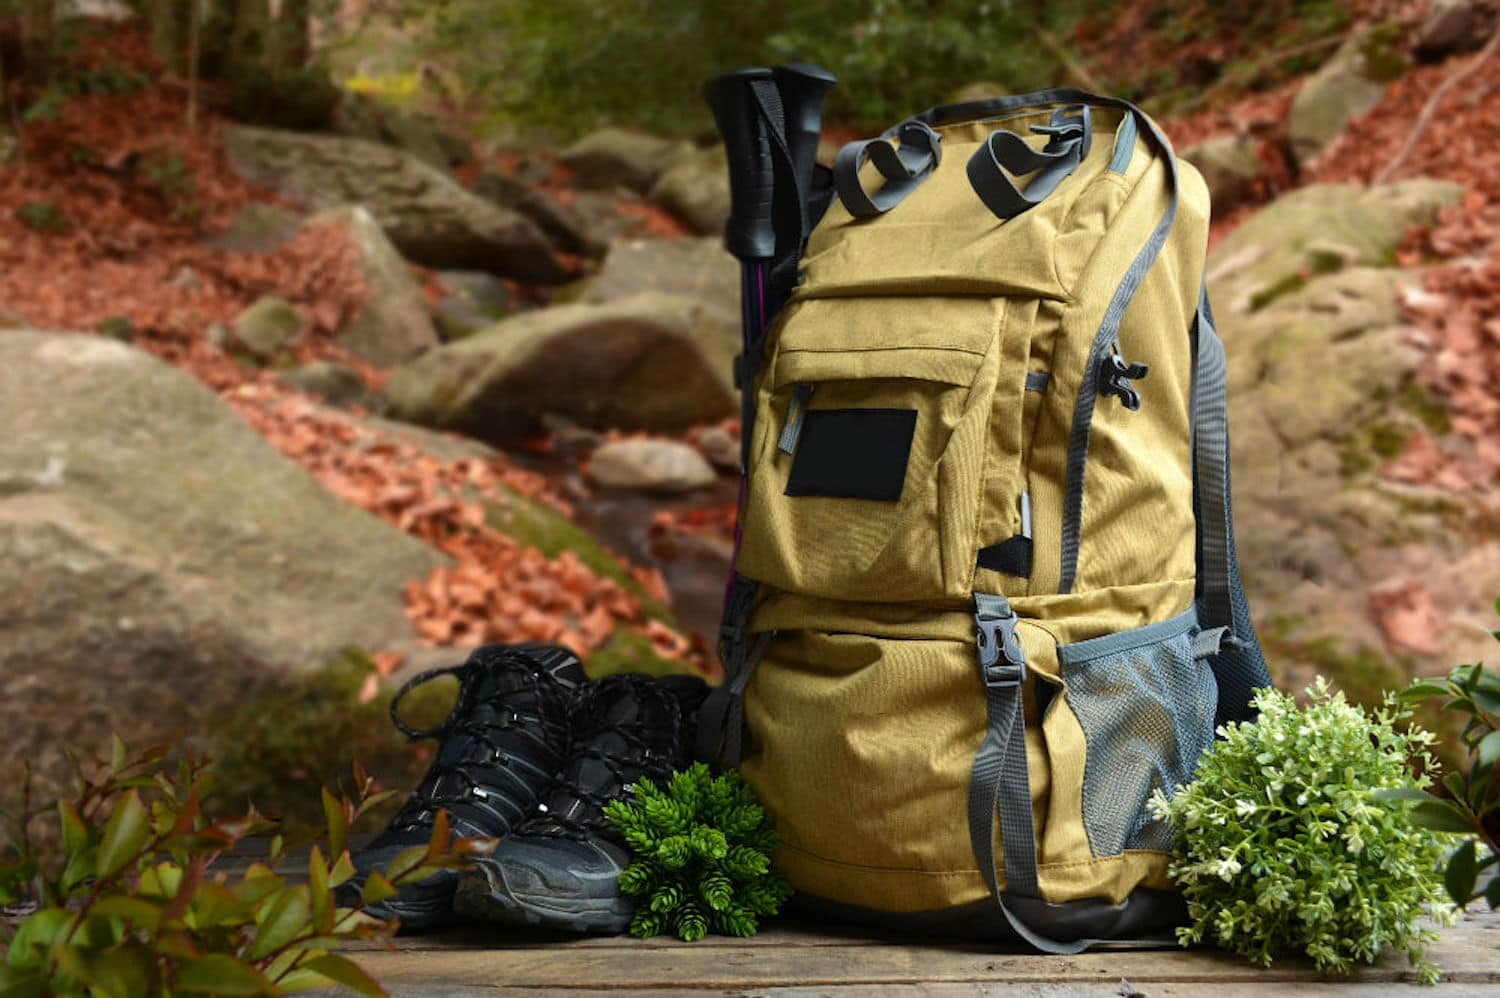 Yellow backpack and black hiking shoes